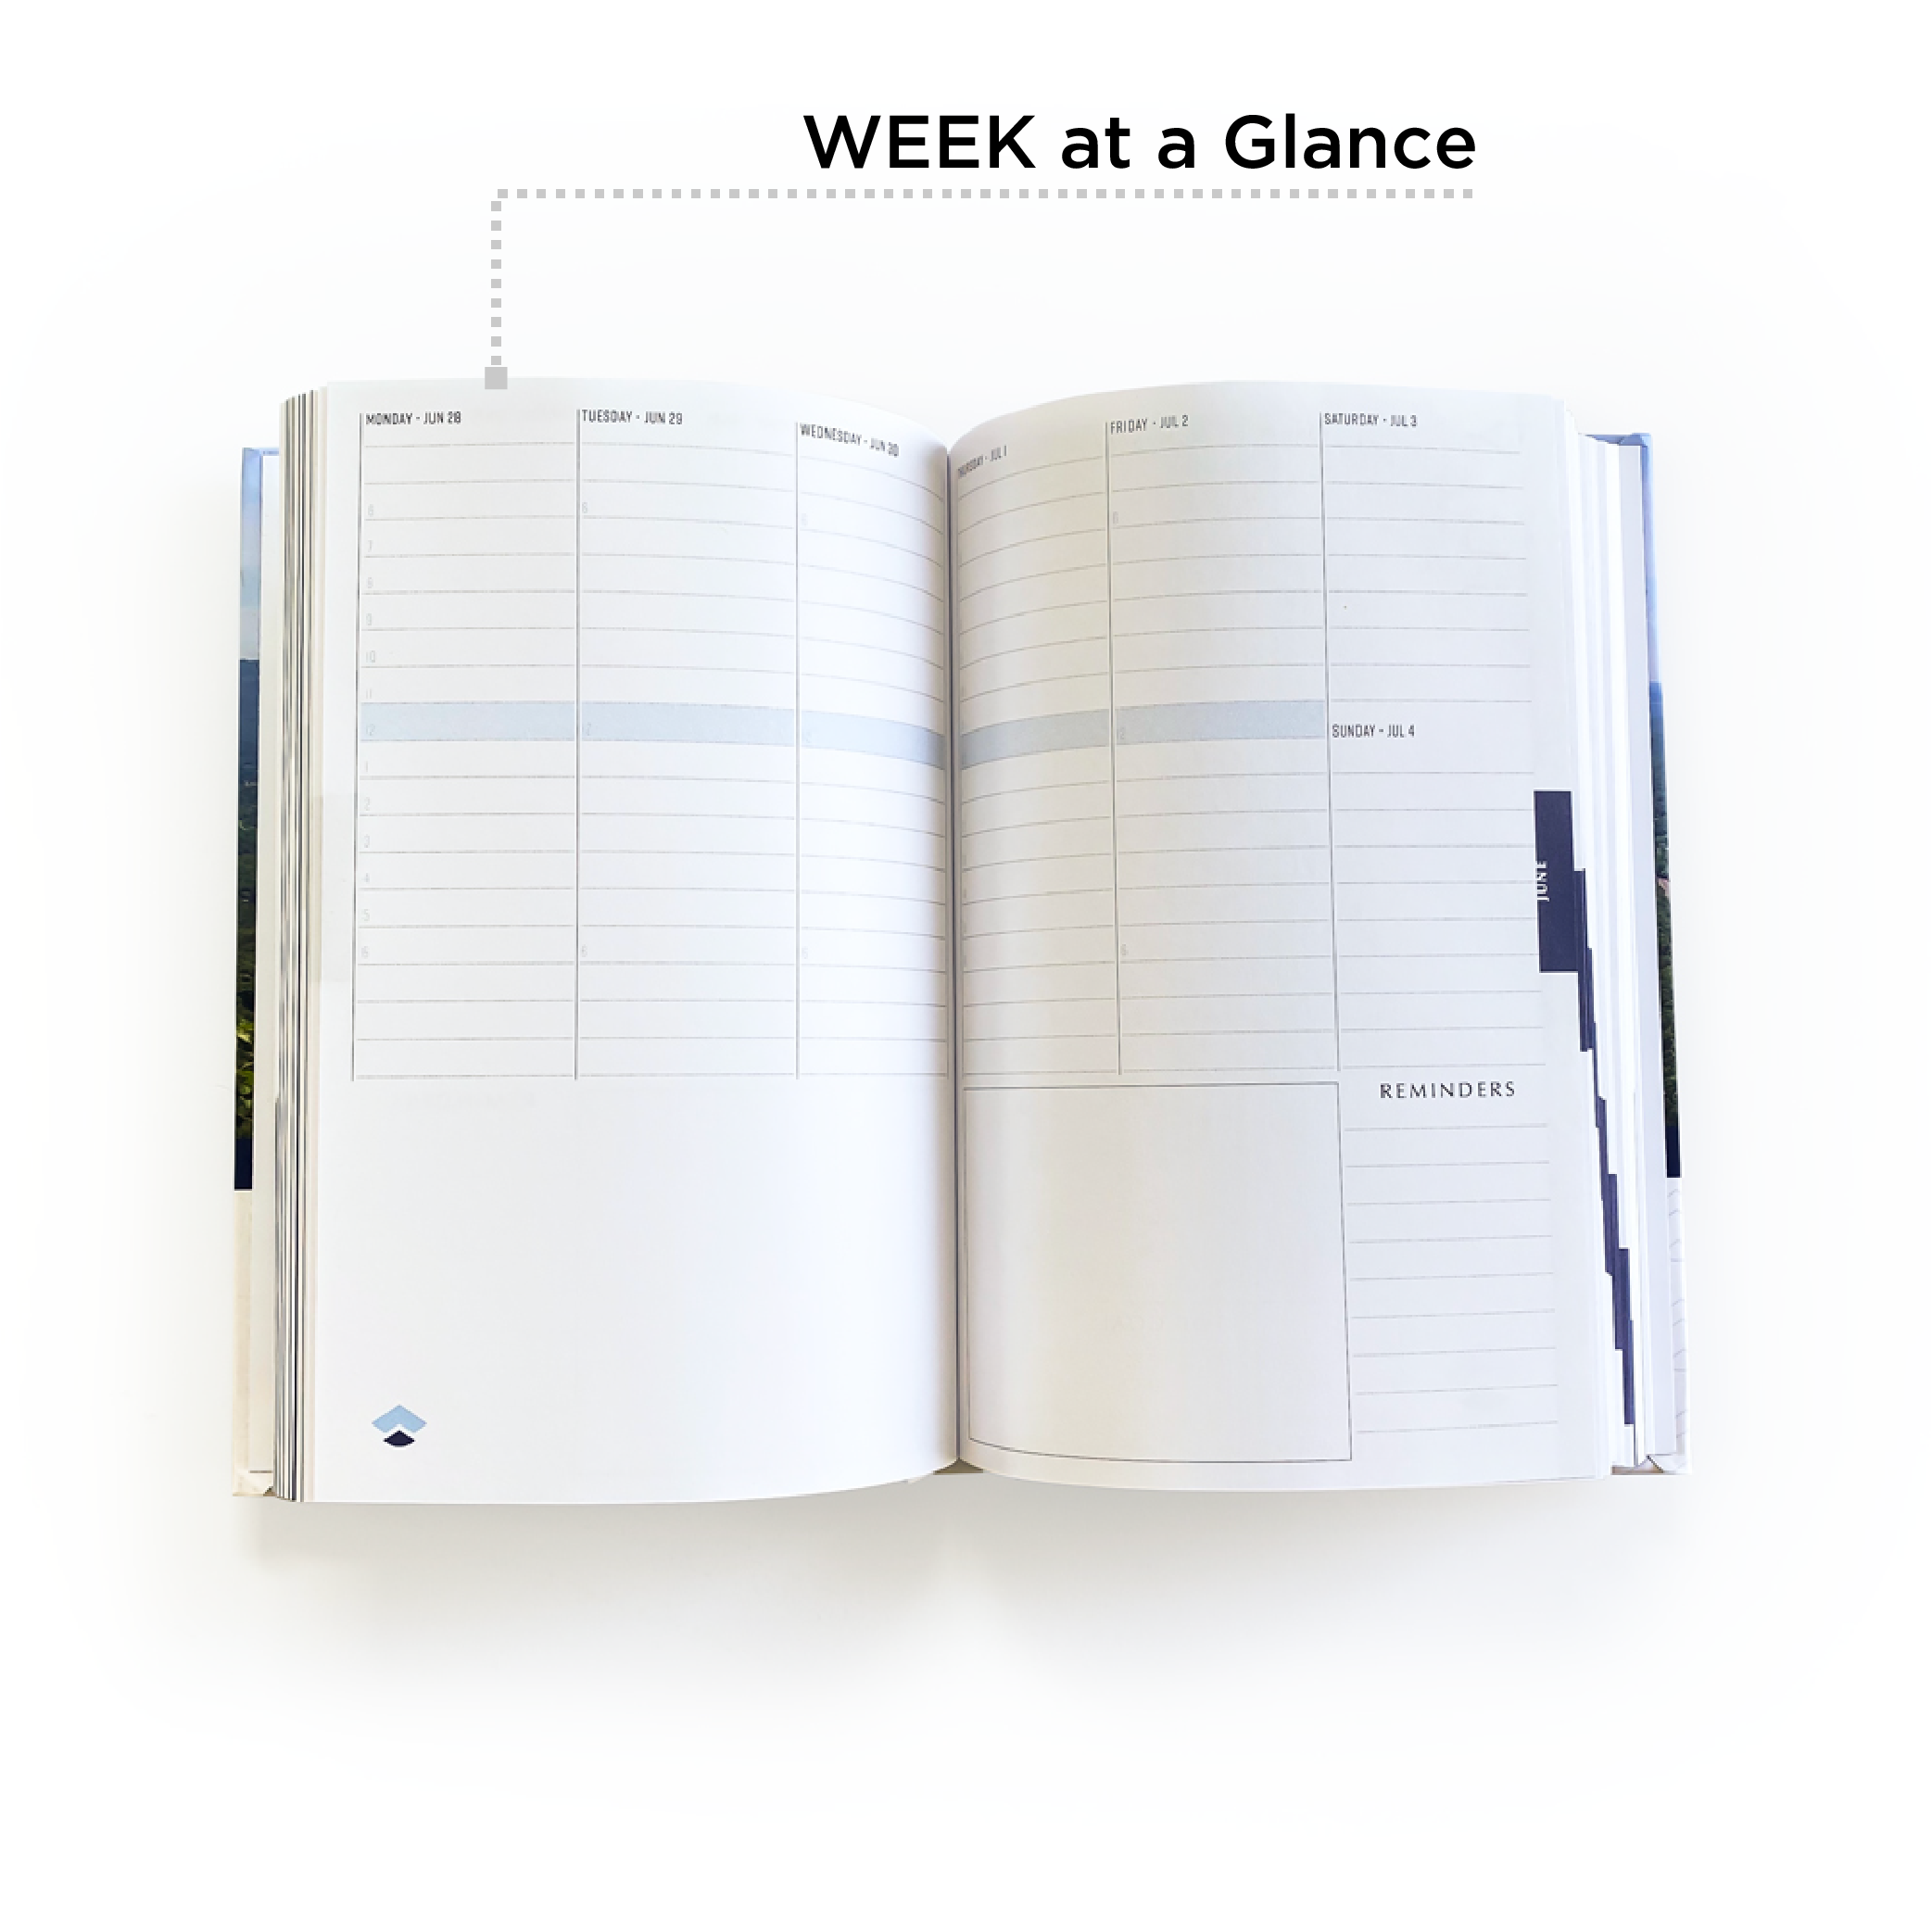 Week at a glance pages